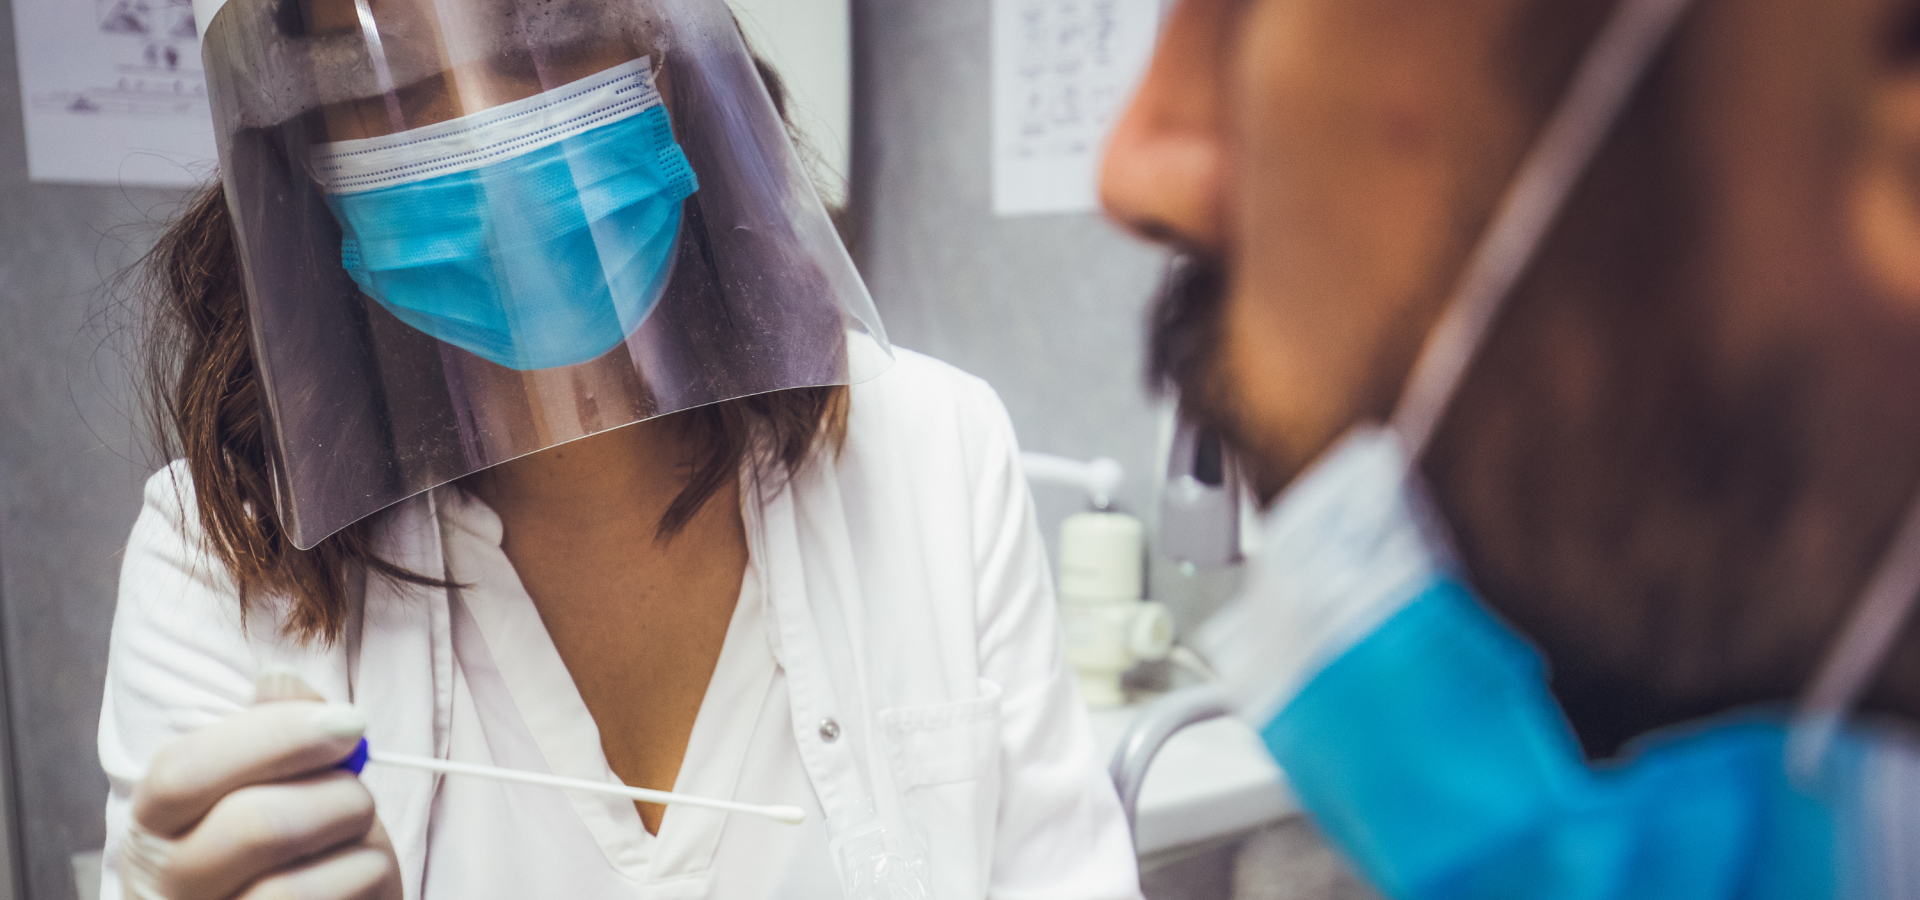 A nurse holds a swab as she approaches a man for a COVID19 test.